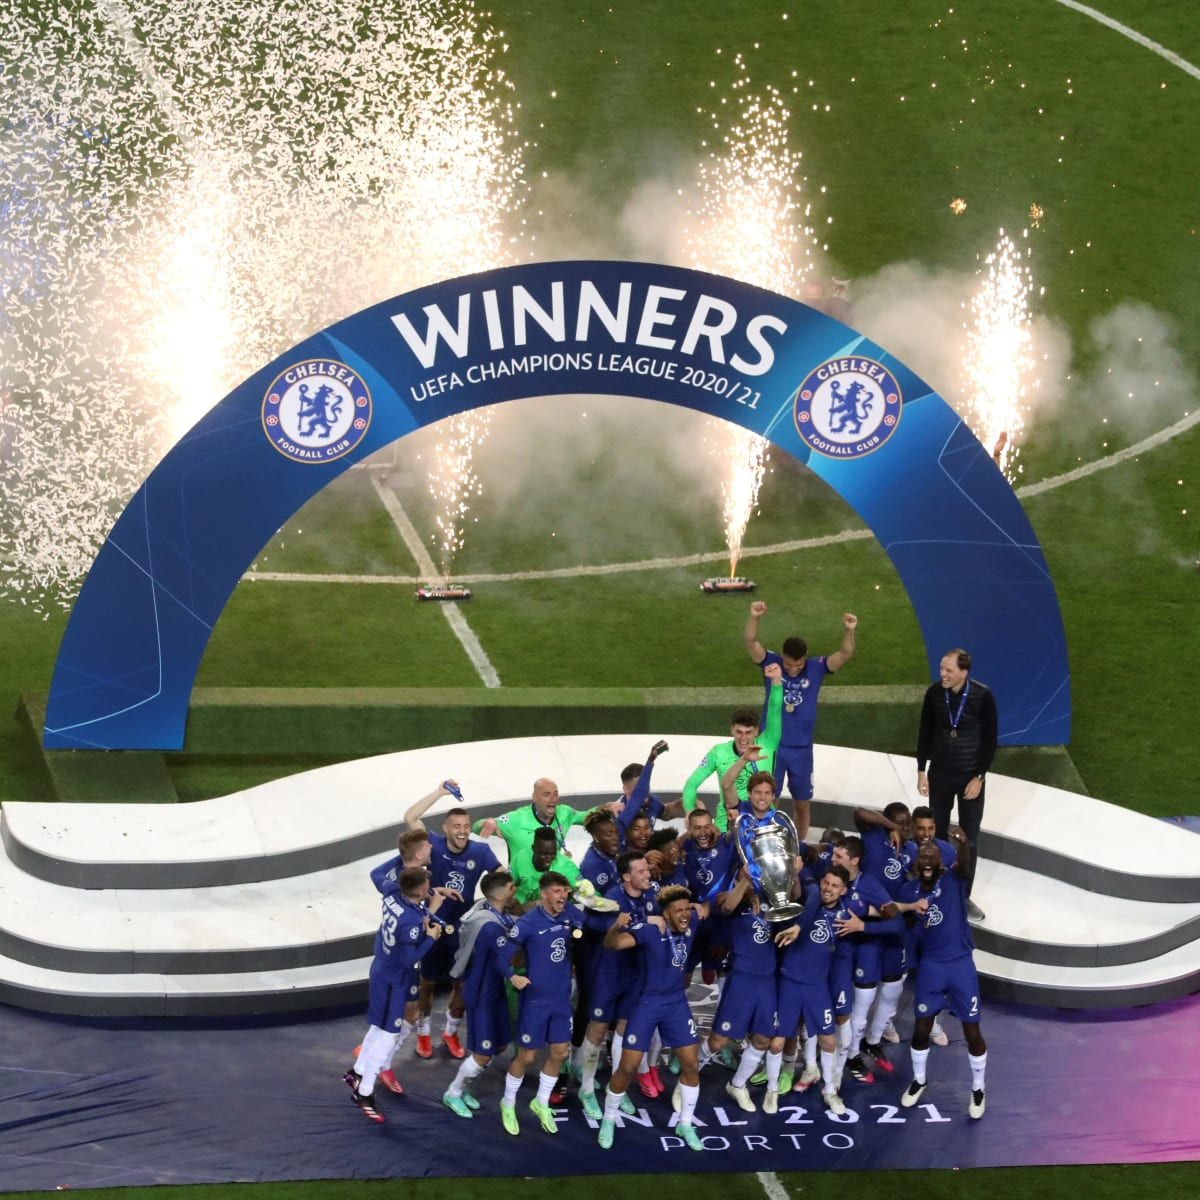 Chelsea S Potential 2021 22 Premier League And Champions League Fixture Schedule In Full Sports Illustrated Chelsea Fc News Analysis And More